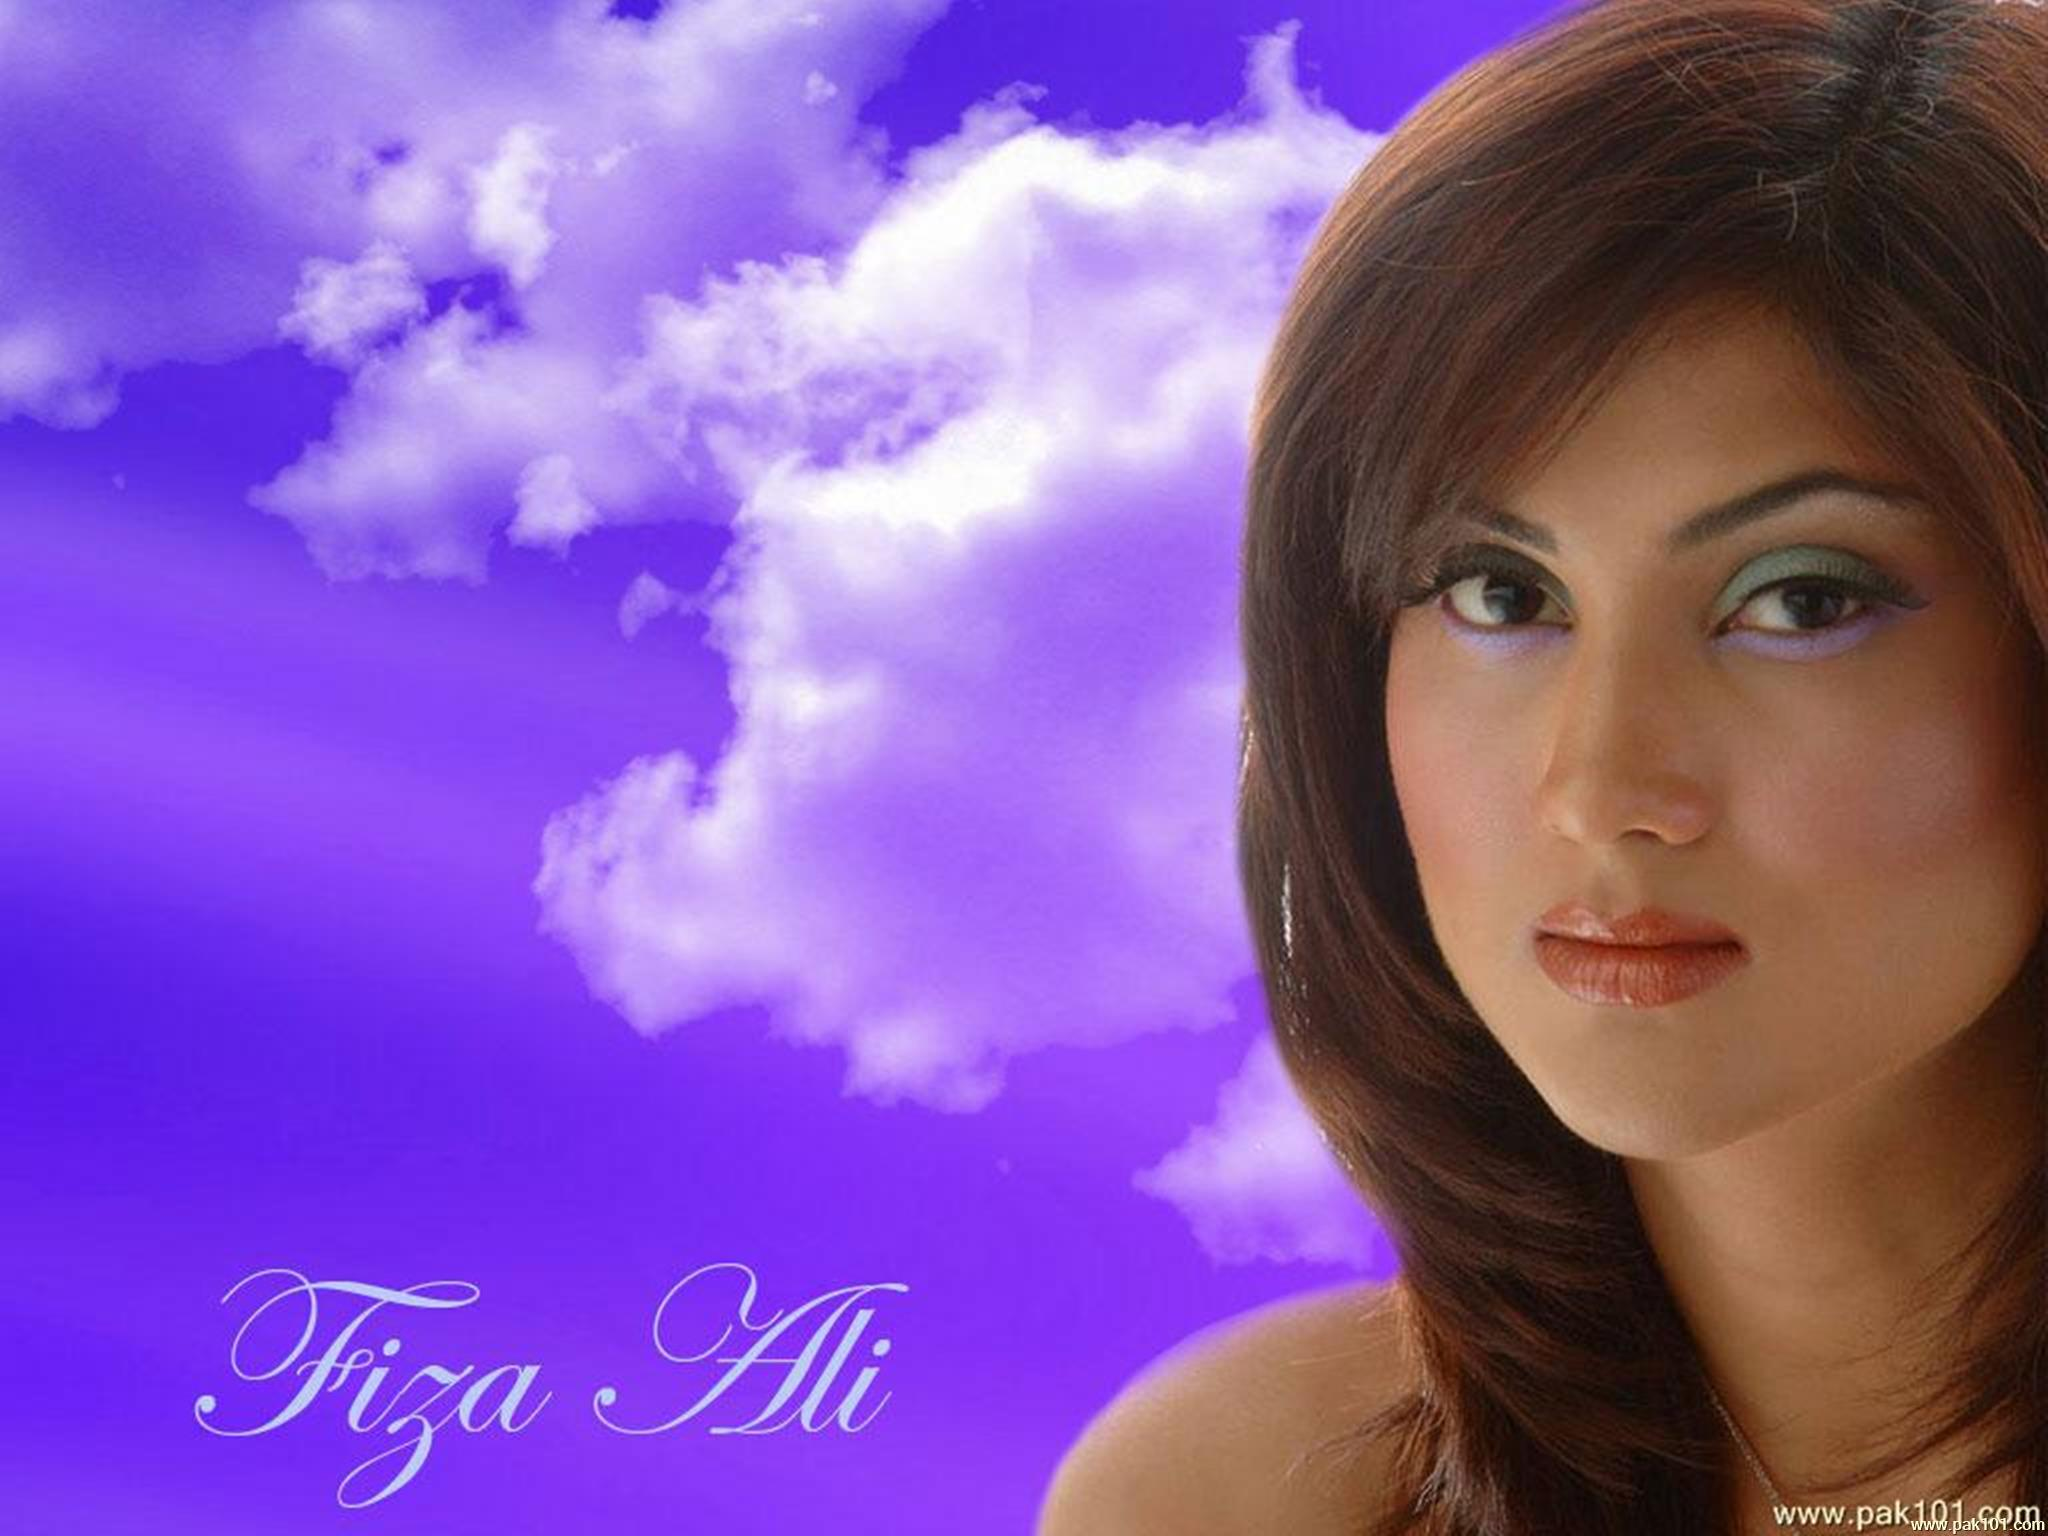 Wallpapers Female Models Fiza ali Fiza Ali high quality 2048x1536